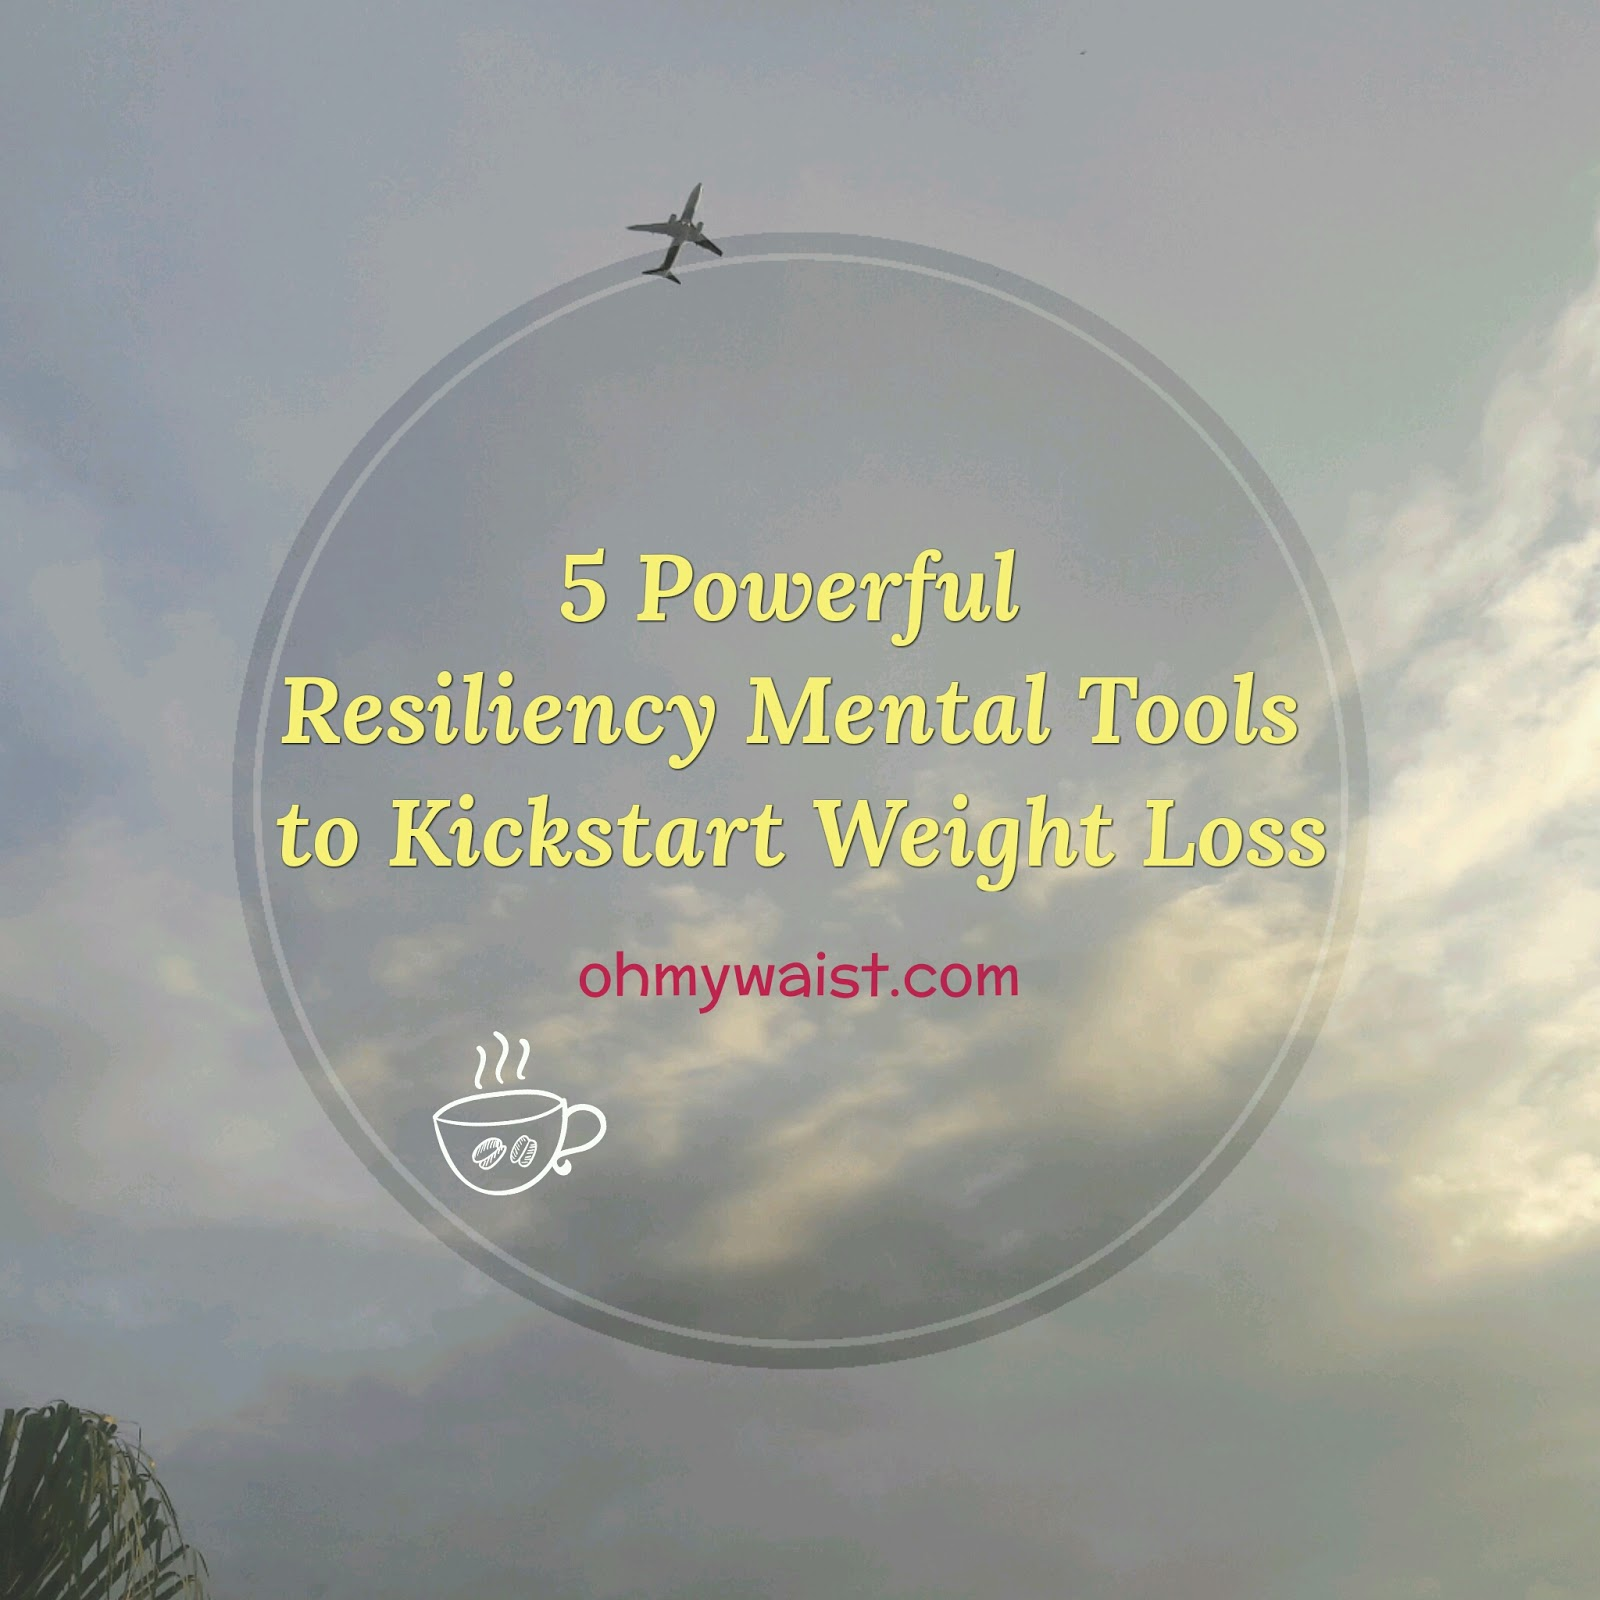 5 Powerful Resiliency Mental Tools to Kickstart Weight Loss